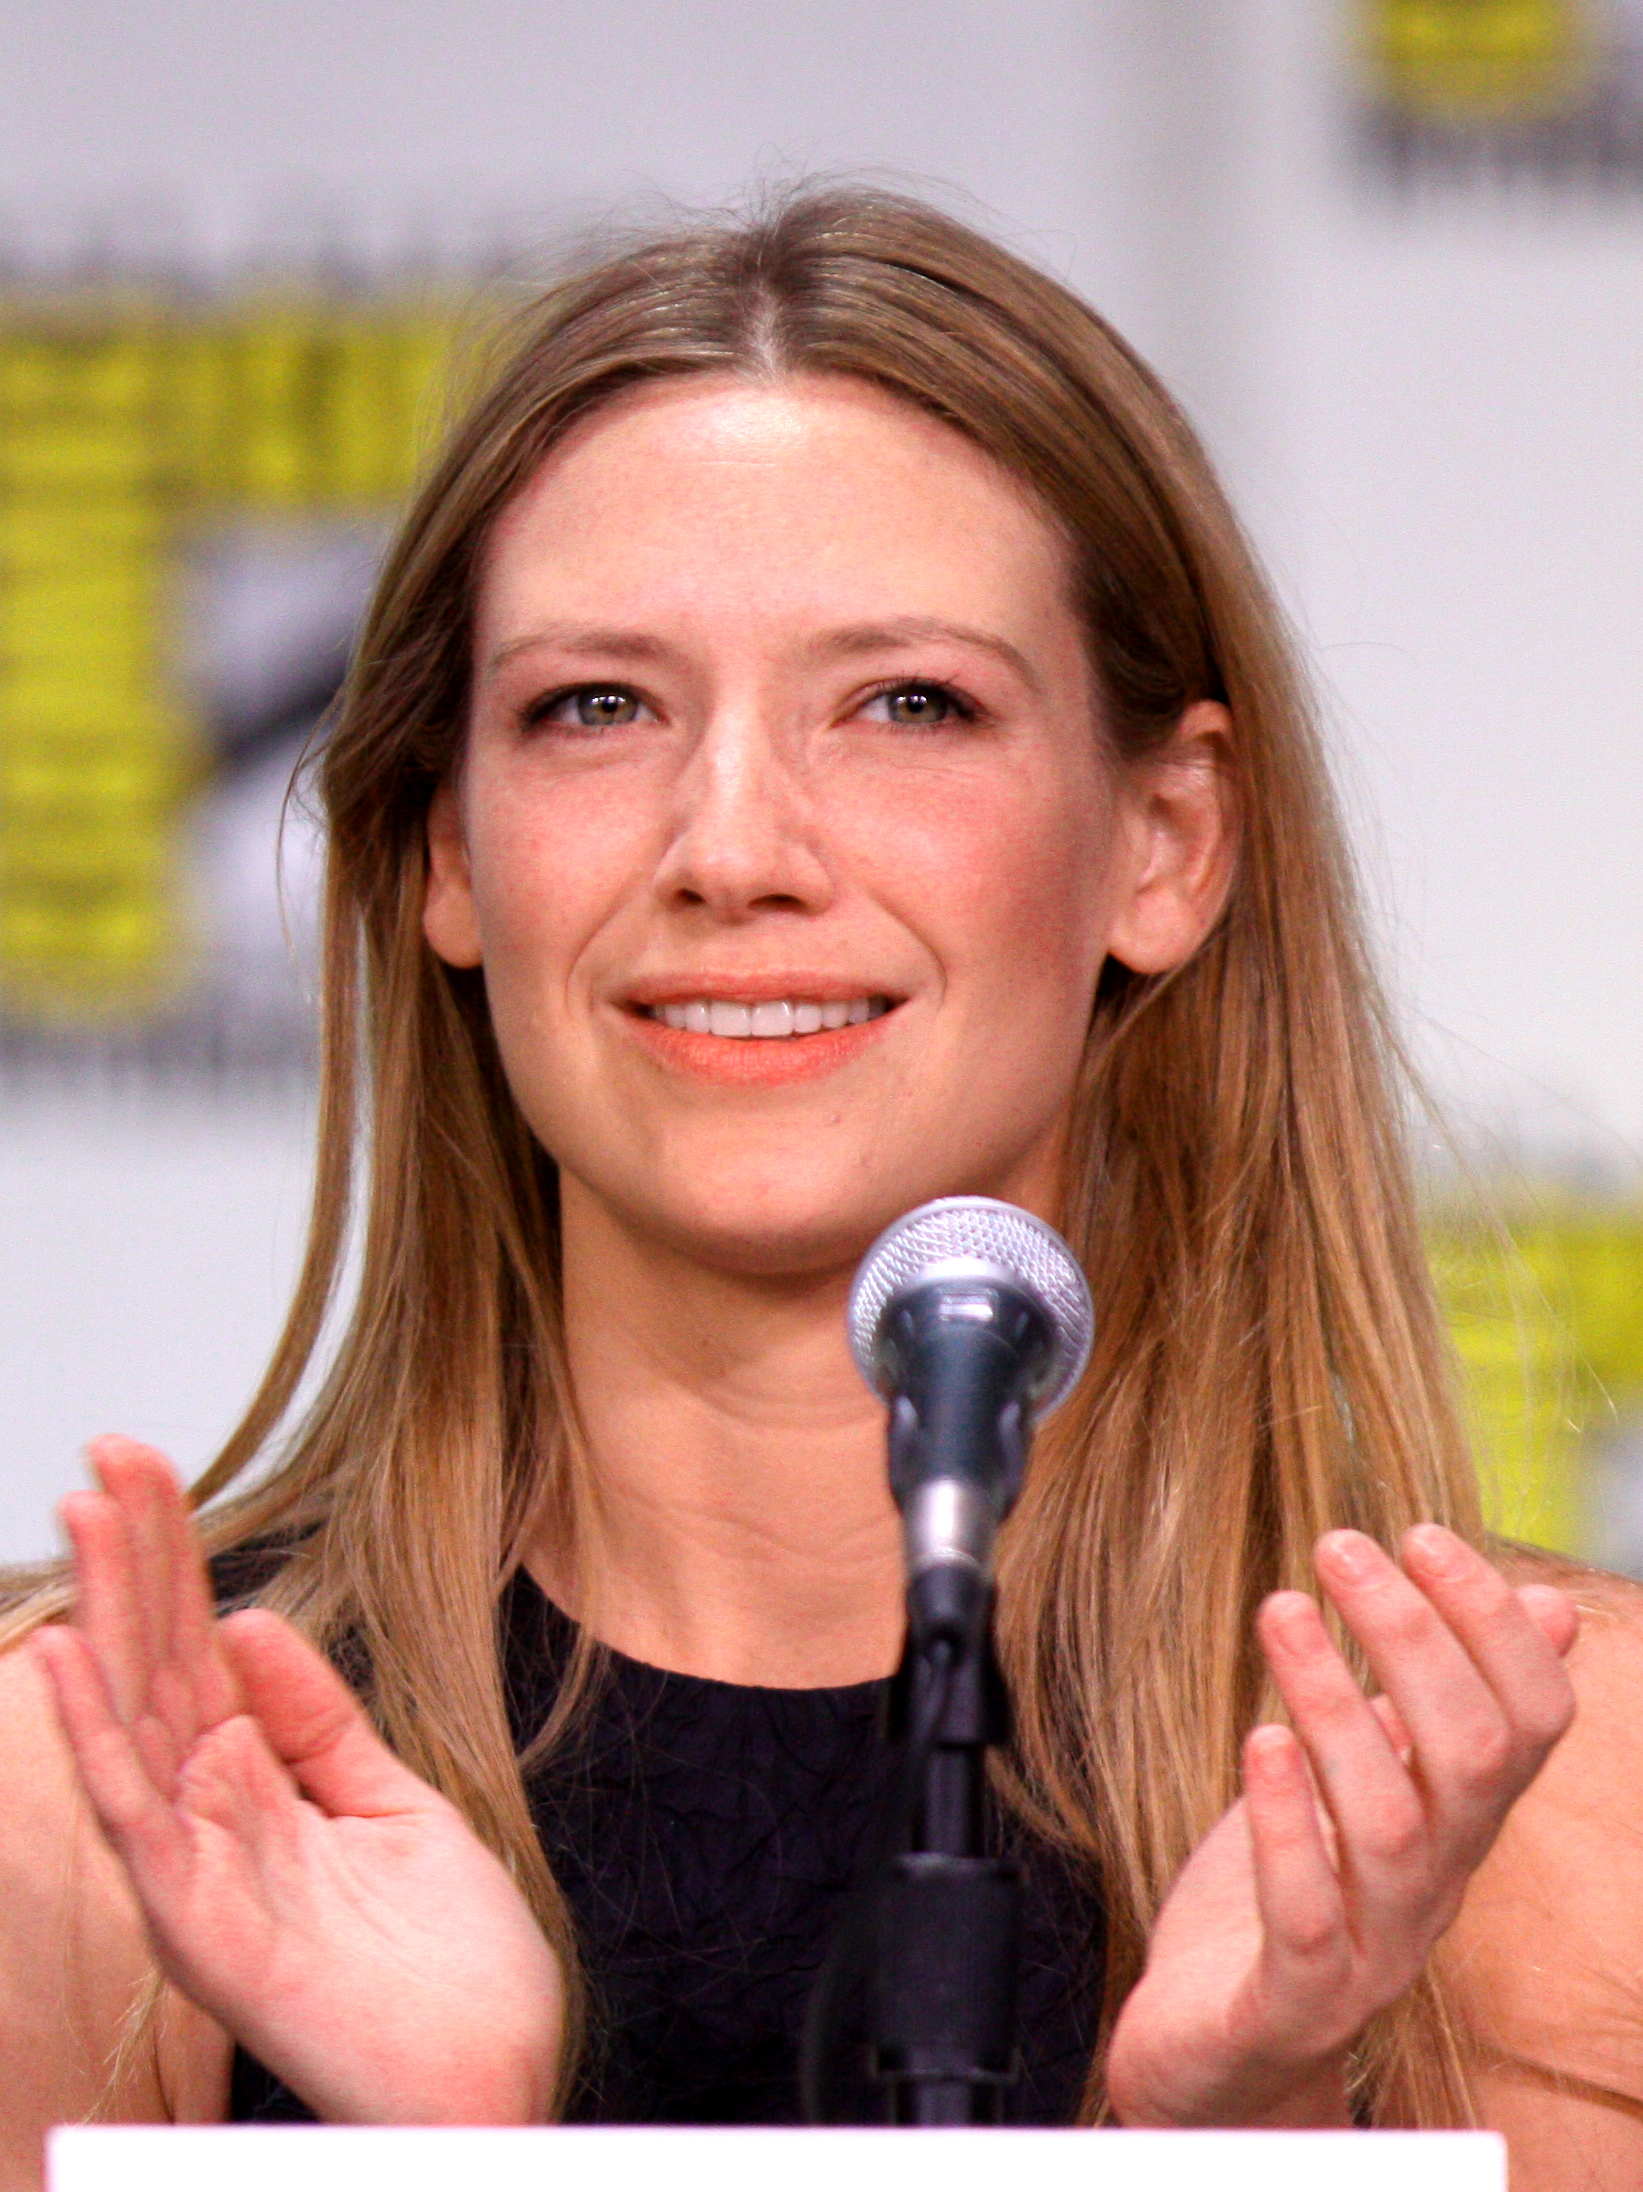 All About Anna 2016 English anna torv - wikipedia